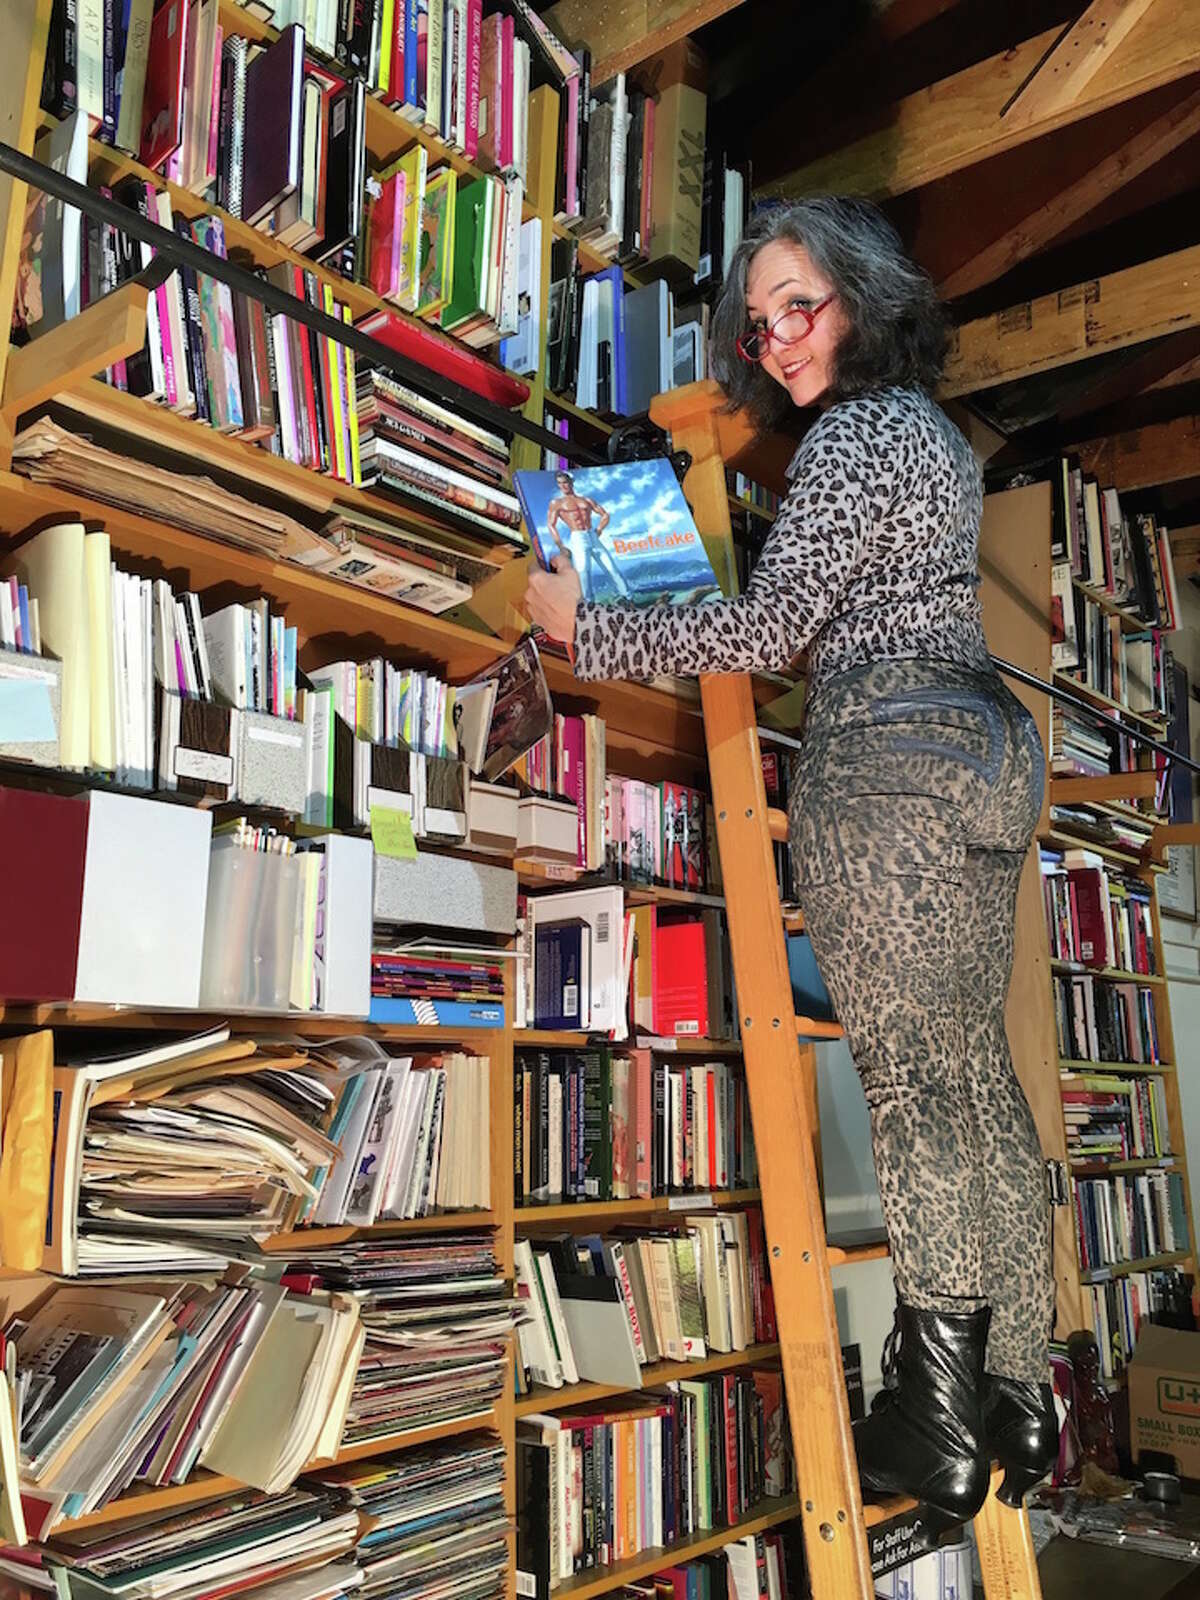 Dorian Katz, Gallery Director for Center for Sex and Culture, looks at books.